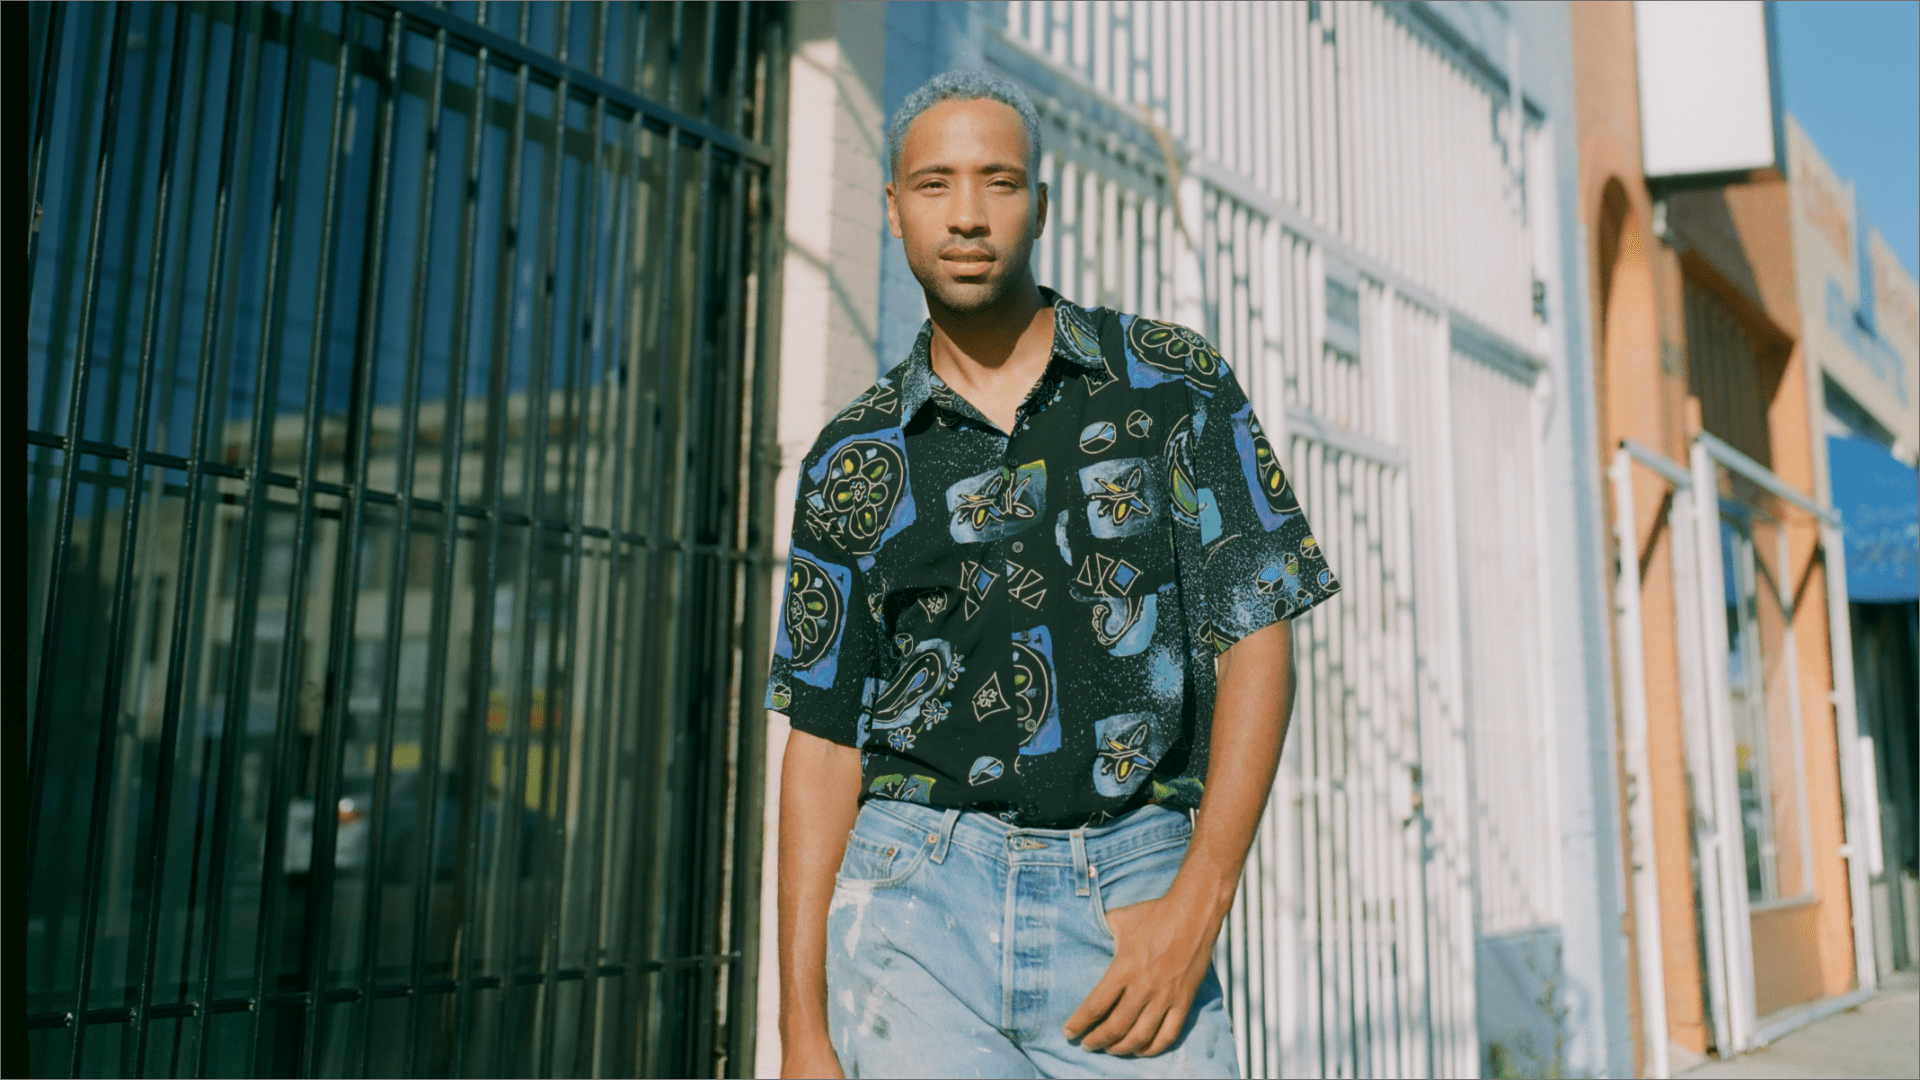 Cimo Fränkel Releases Outstanding Visuals For Uplifting Track 'World Is Waking Up'